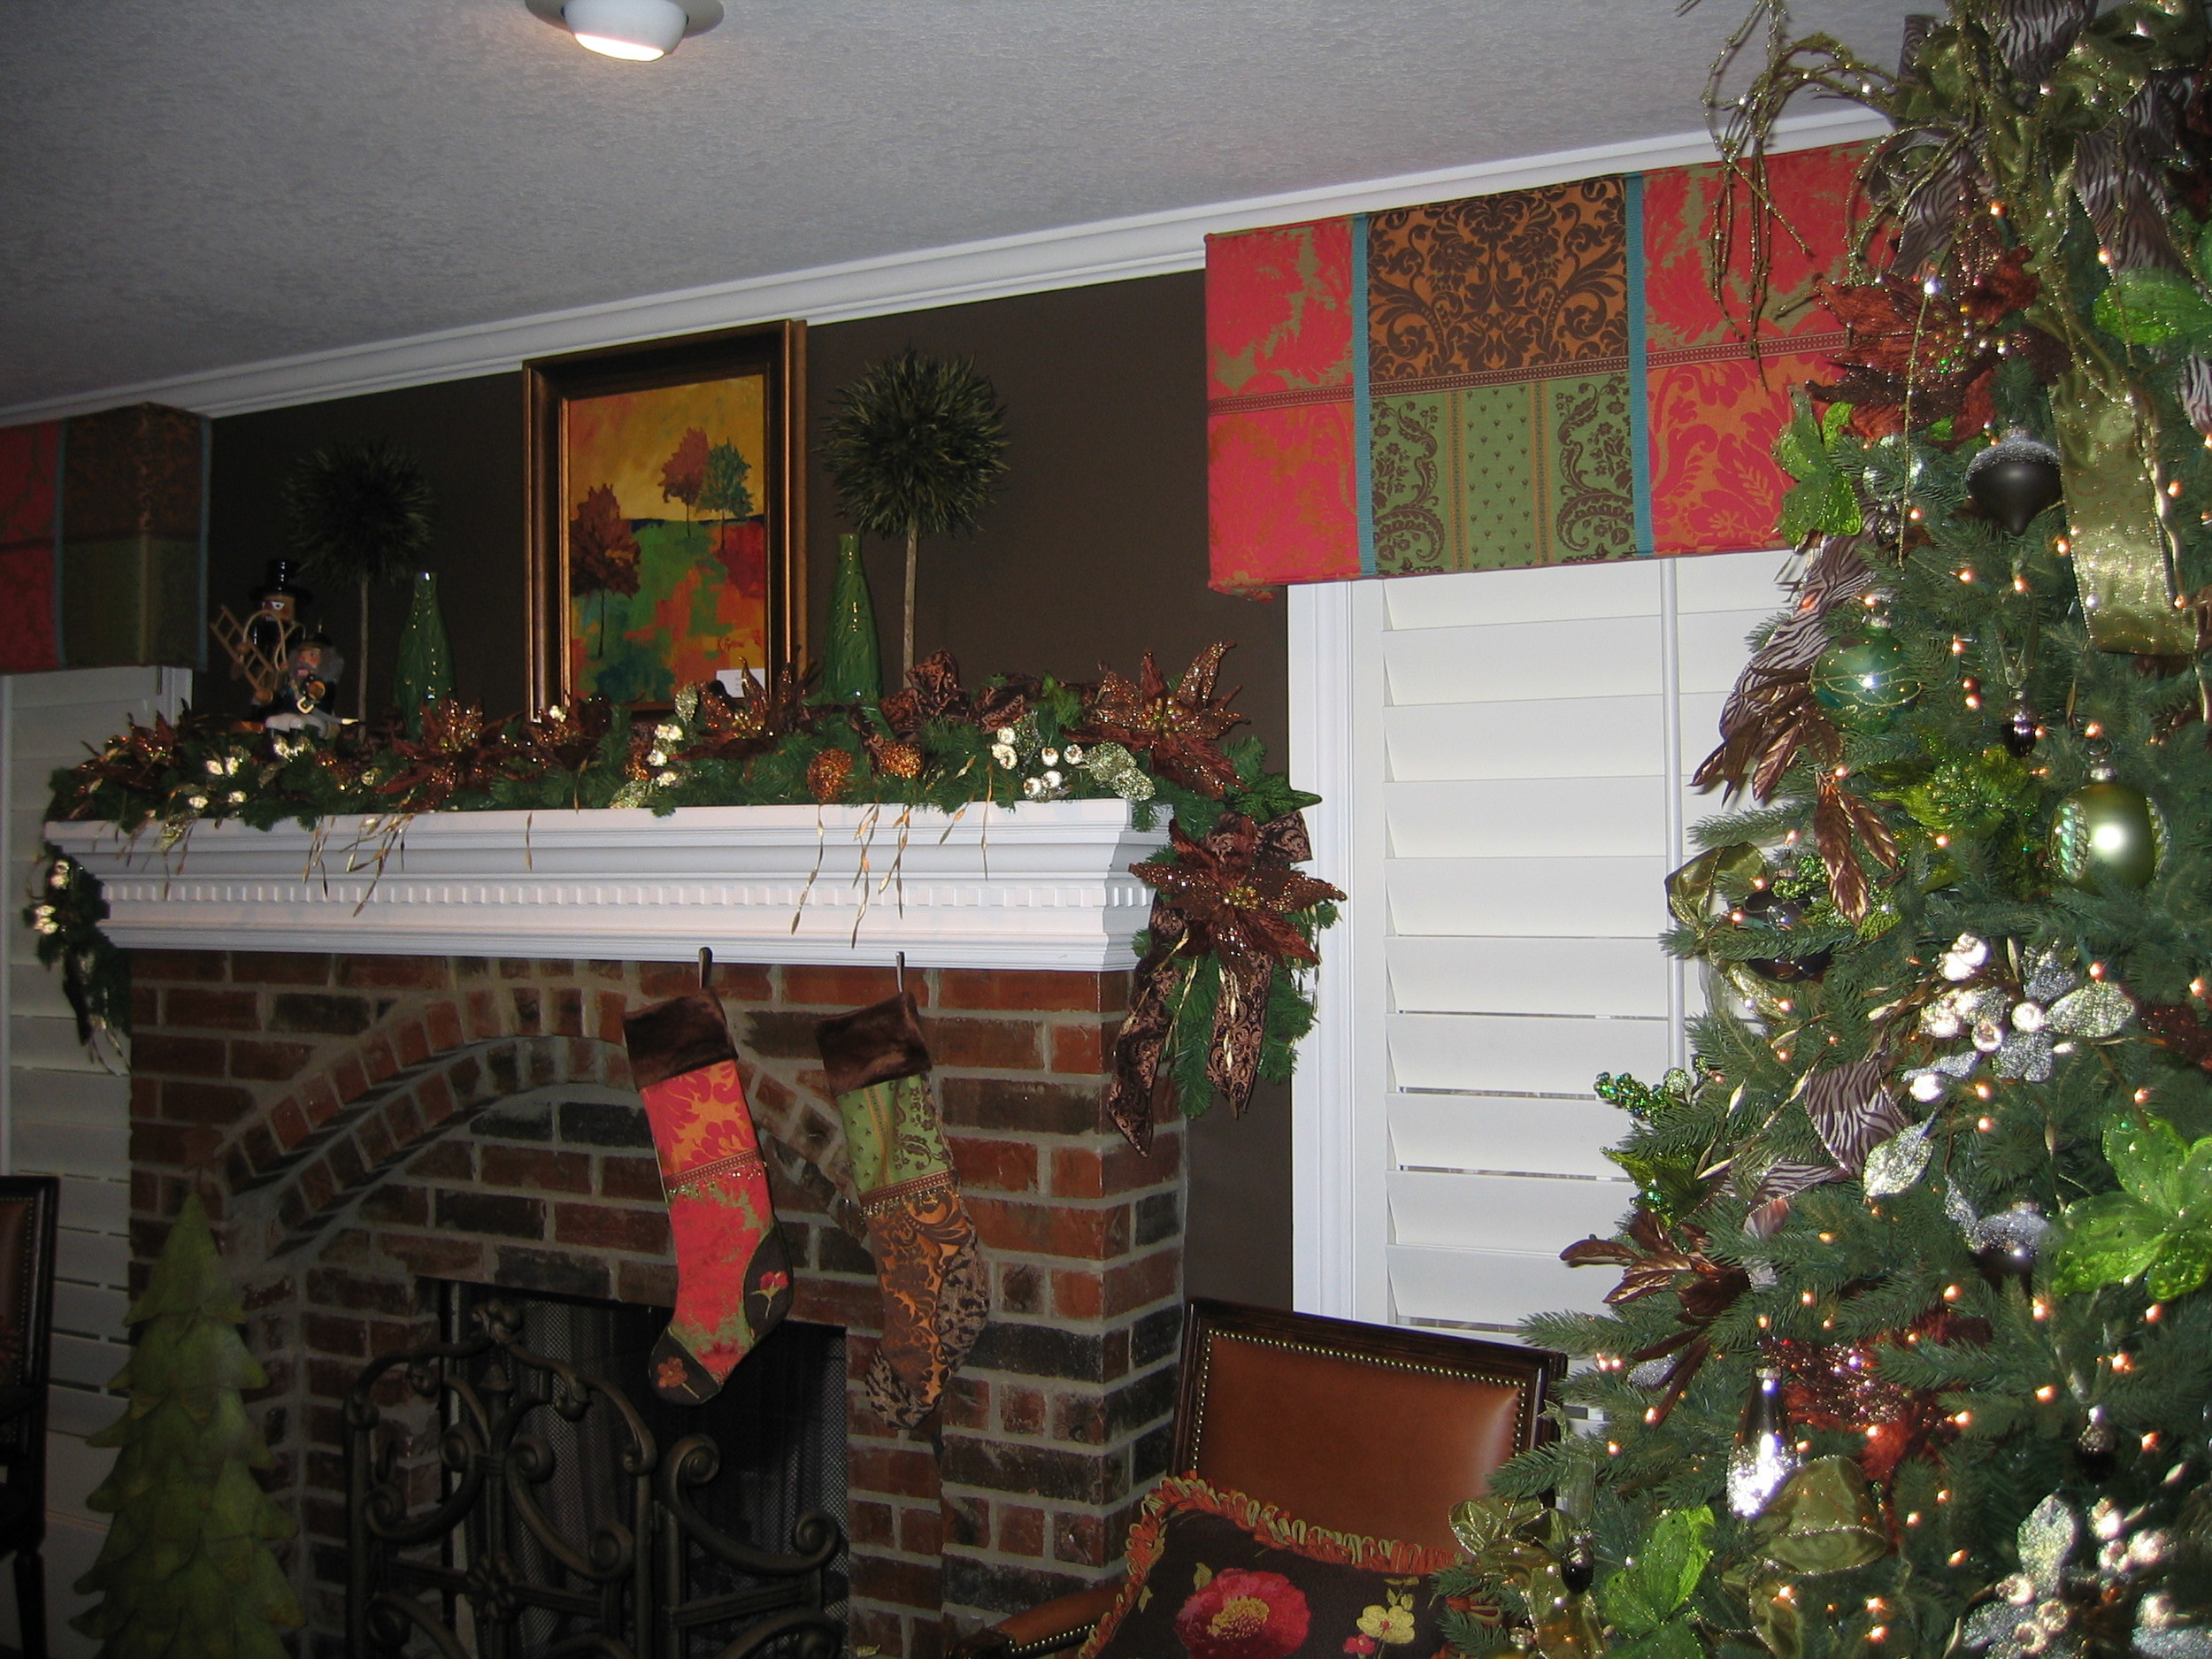 A beautiful Holiday Tree and Mantle - also take note of the hard cornices on the window fabricated by Cord & Pleat Design, Inc.